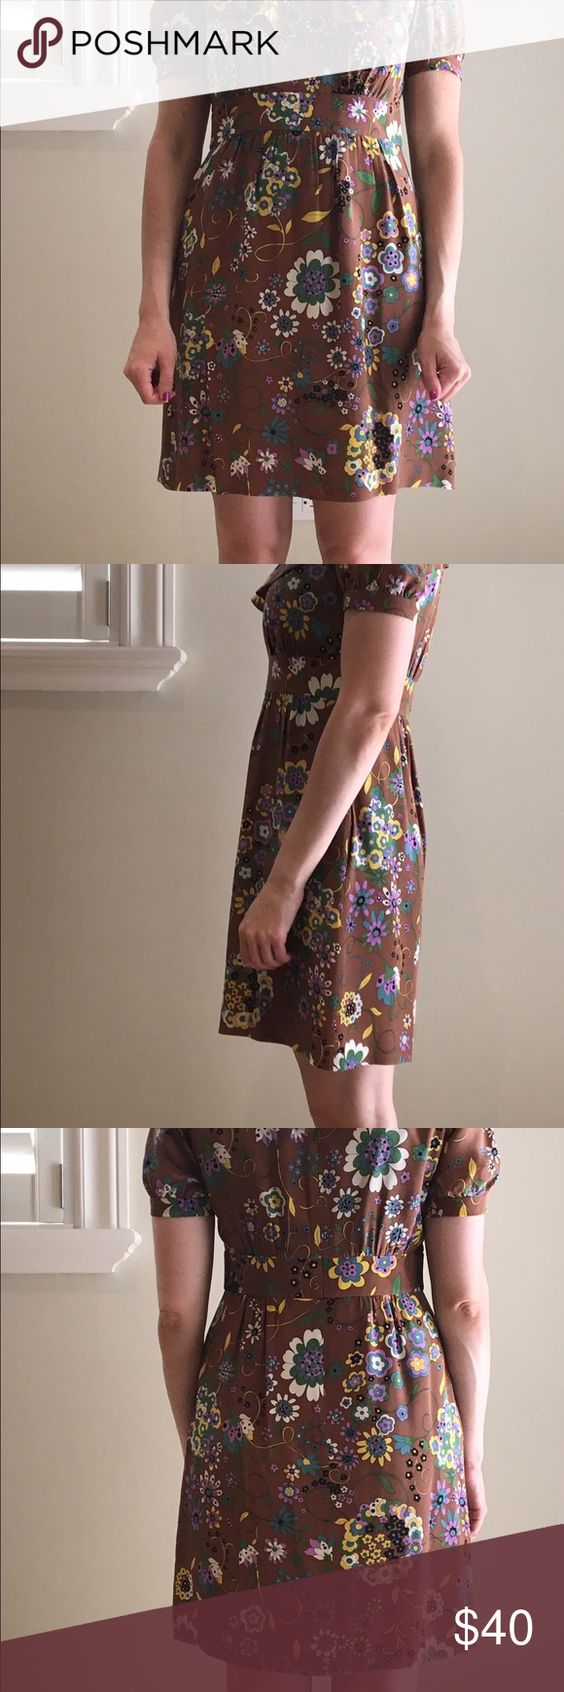 """Tibi Silk Floral Sh Sleeve Silk Dress -Size 6 Welcome to the fall palette!  FUN AND FLIRTY, this silk floral dress is colorful and happy.  A small ruffle around the scoop neck is a feminine touch.  The pockets in the dress and the flowy bottom of the dress make it easy and comfortable to wear.     Great mix of colors. Perfect condition.    Dress it up with pumps or wear with chic flats. Add a sweater or blazer in the fall and wear it """"as is"""" during the warmer months.     This versatile…"""